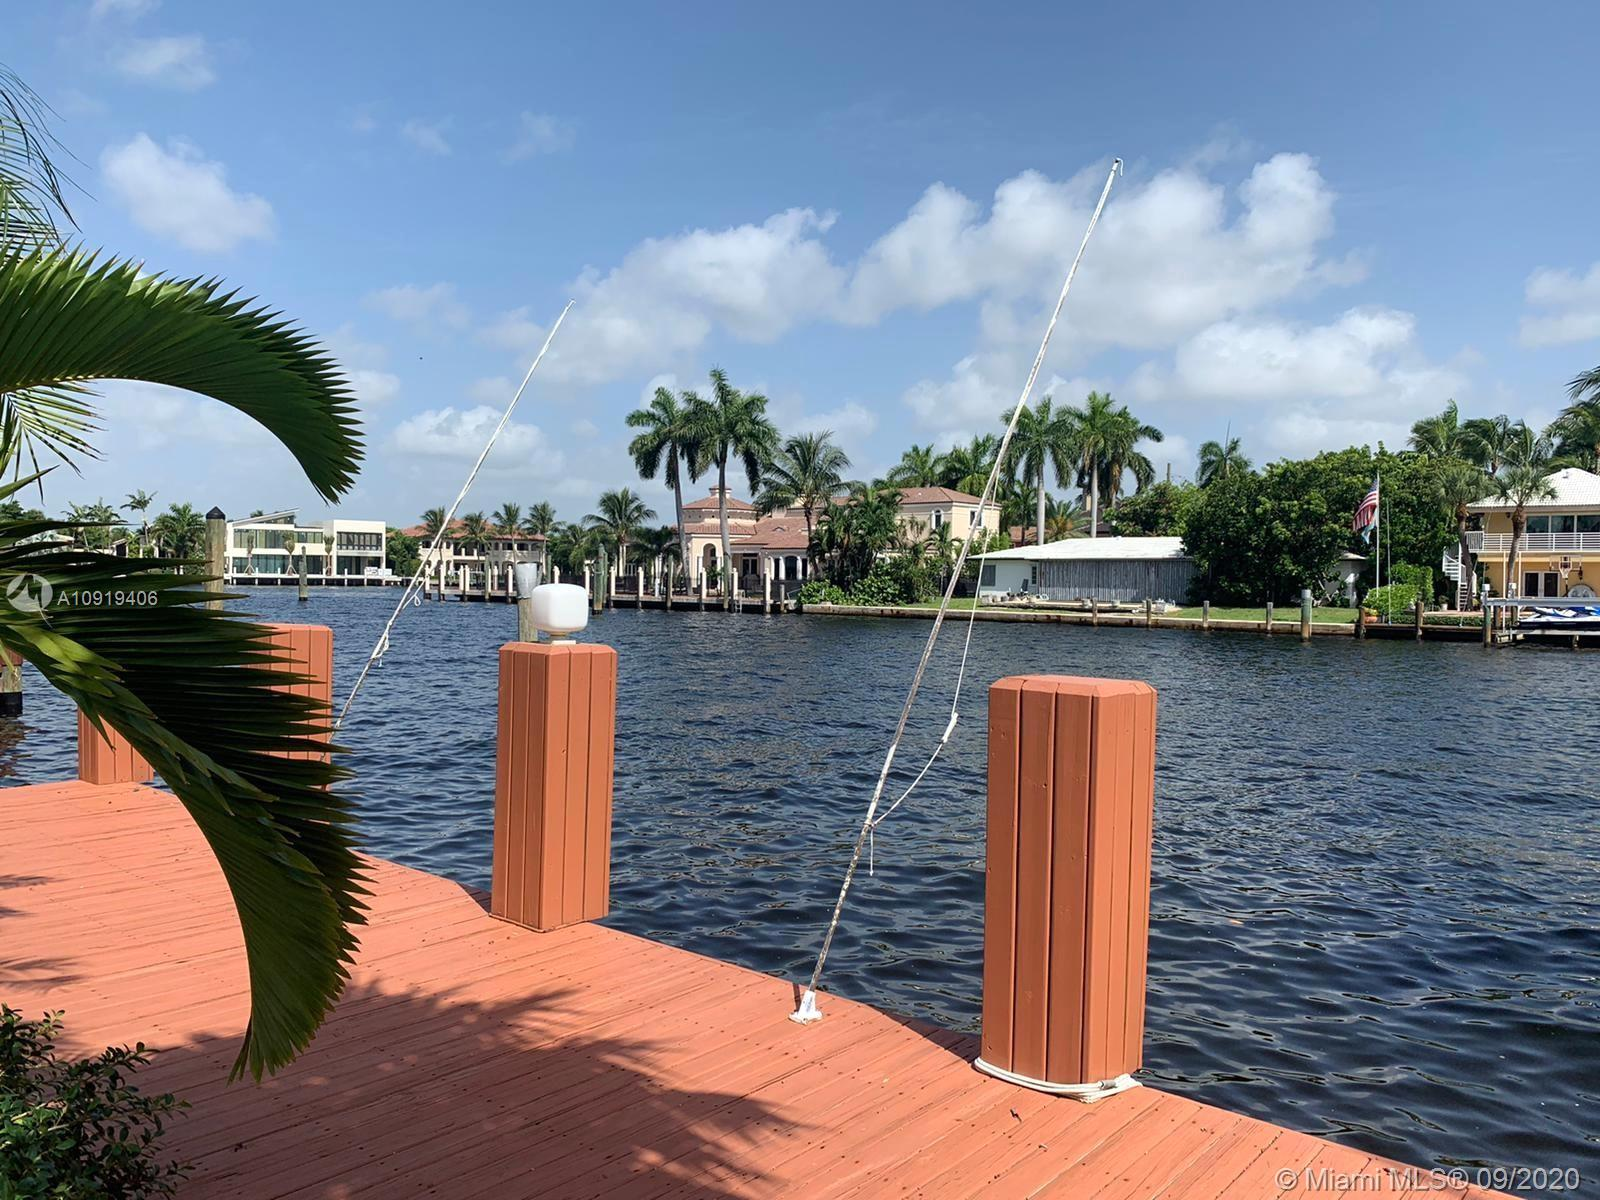 "BEAUTIFUL HOUSE , 200 ft wide canal Newly remodeled ""Magazine Quality Home"" Wide water and intracostal views 3/3 1/2 /2cg pool , new dock, 2900 sg ft, lush landscaping walk to the beach,courtyard gated entrance,foyer entrance ,open great room, french doors open to the cove red marble patio and pool area with amazing views, new designer kitchen ,granite counters ,formal dining room,3 bedrooms in suite designer baths,split floor plan,plus guest 1/2 bath , inside laundry room, HIGH IMPACT WINDWOWS Private gate to park and Beach access